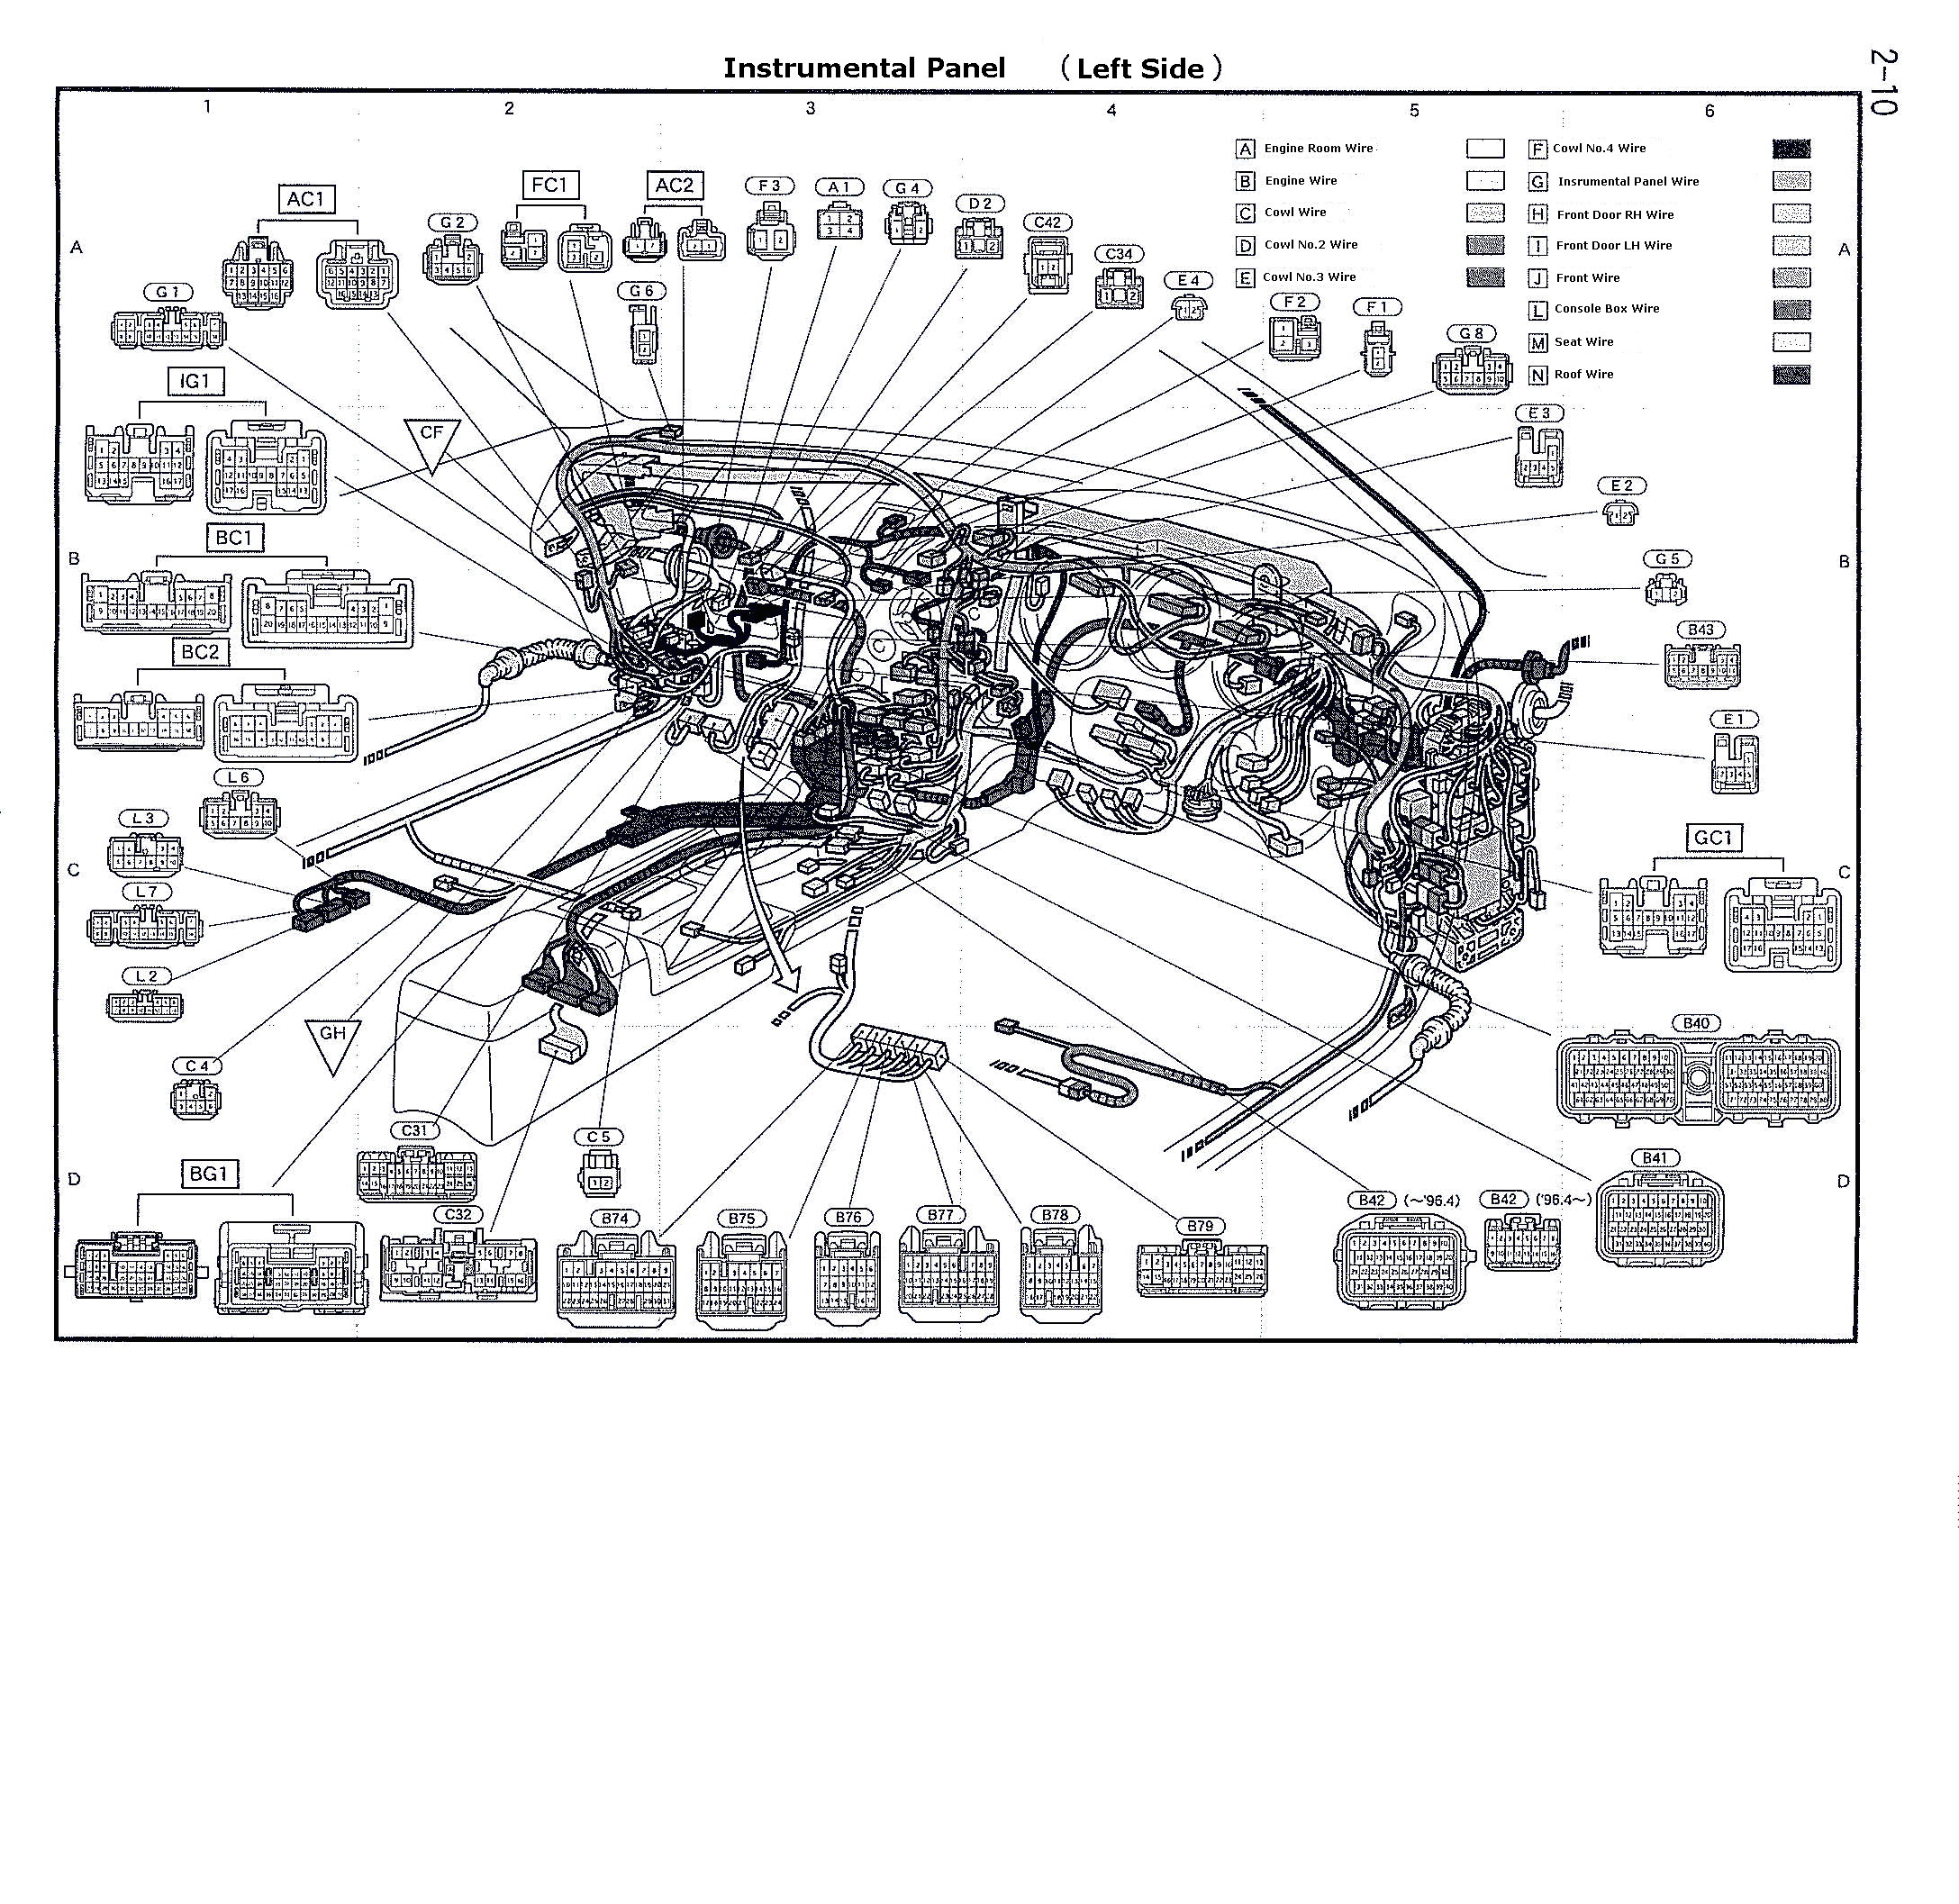 2jz wiring diagram spotlight for hilux supra 2jzgte vvti diagrams 97 8 02 2jzgarage